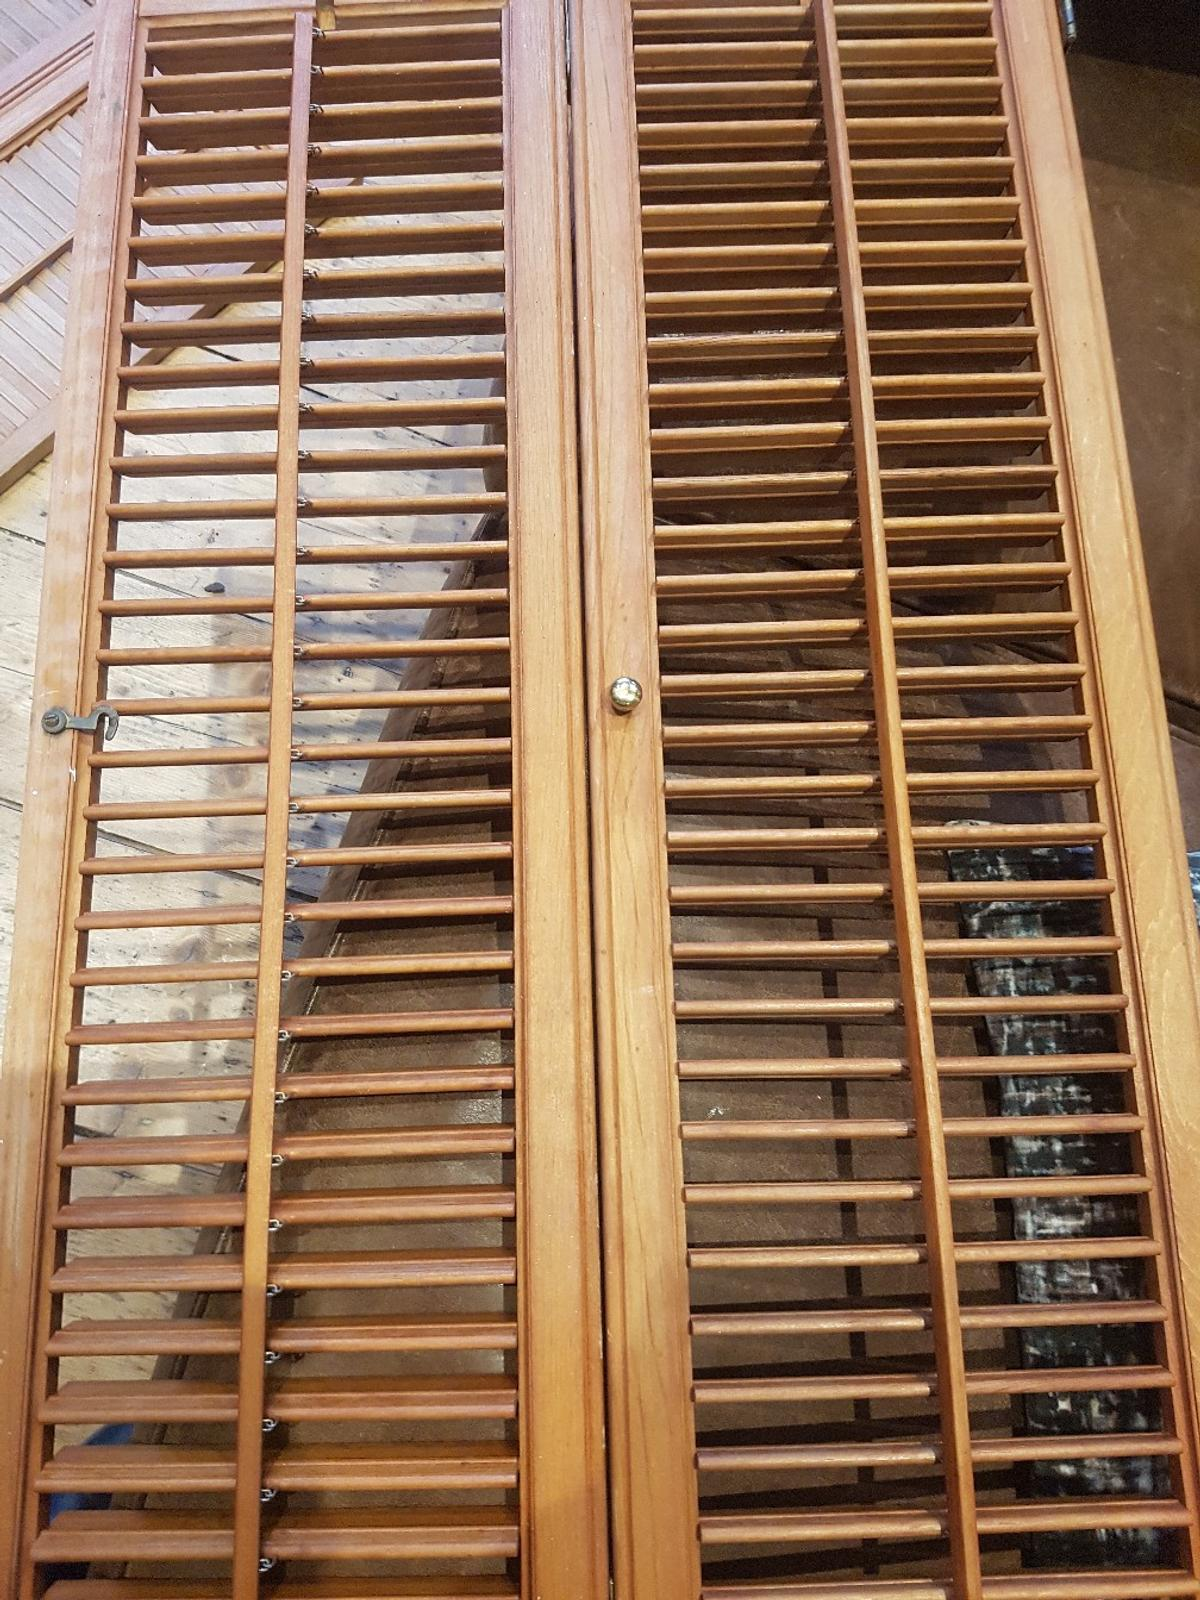 Wooden Bay Window Shutters In Bn1 Brighton For 100 00 For